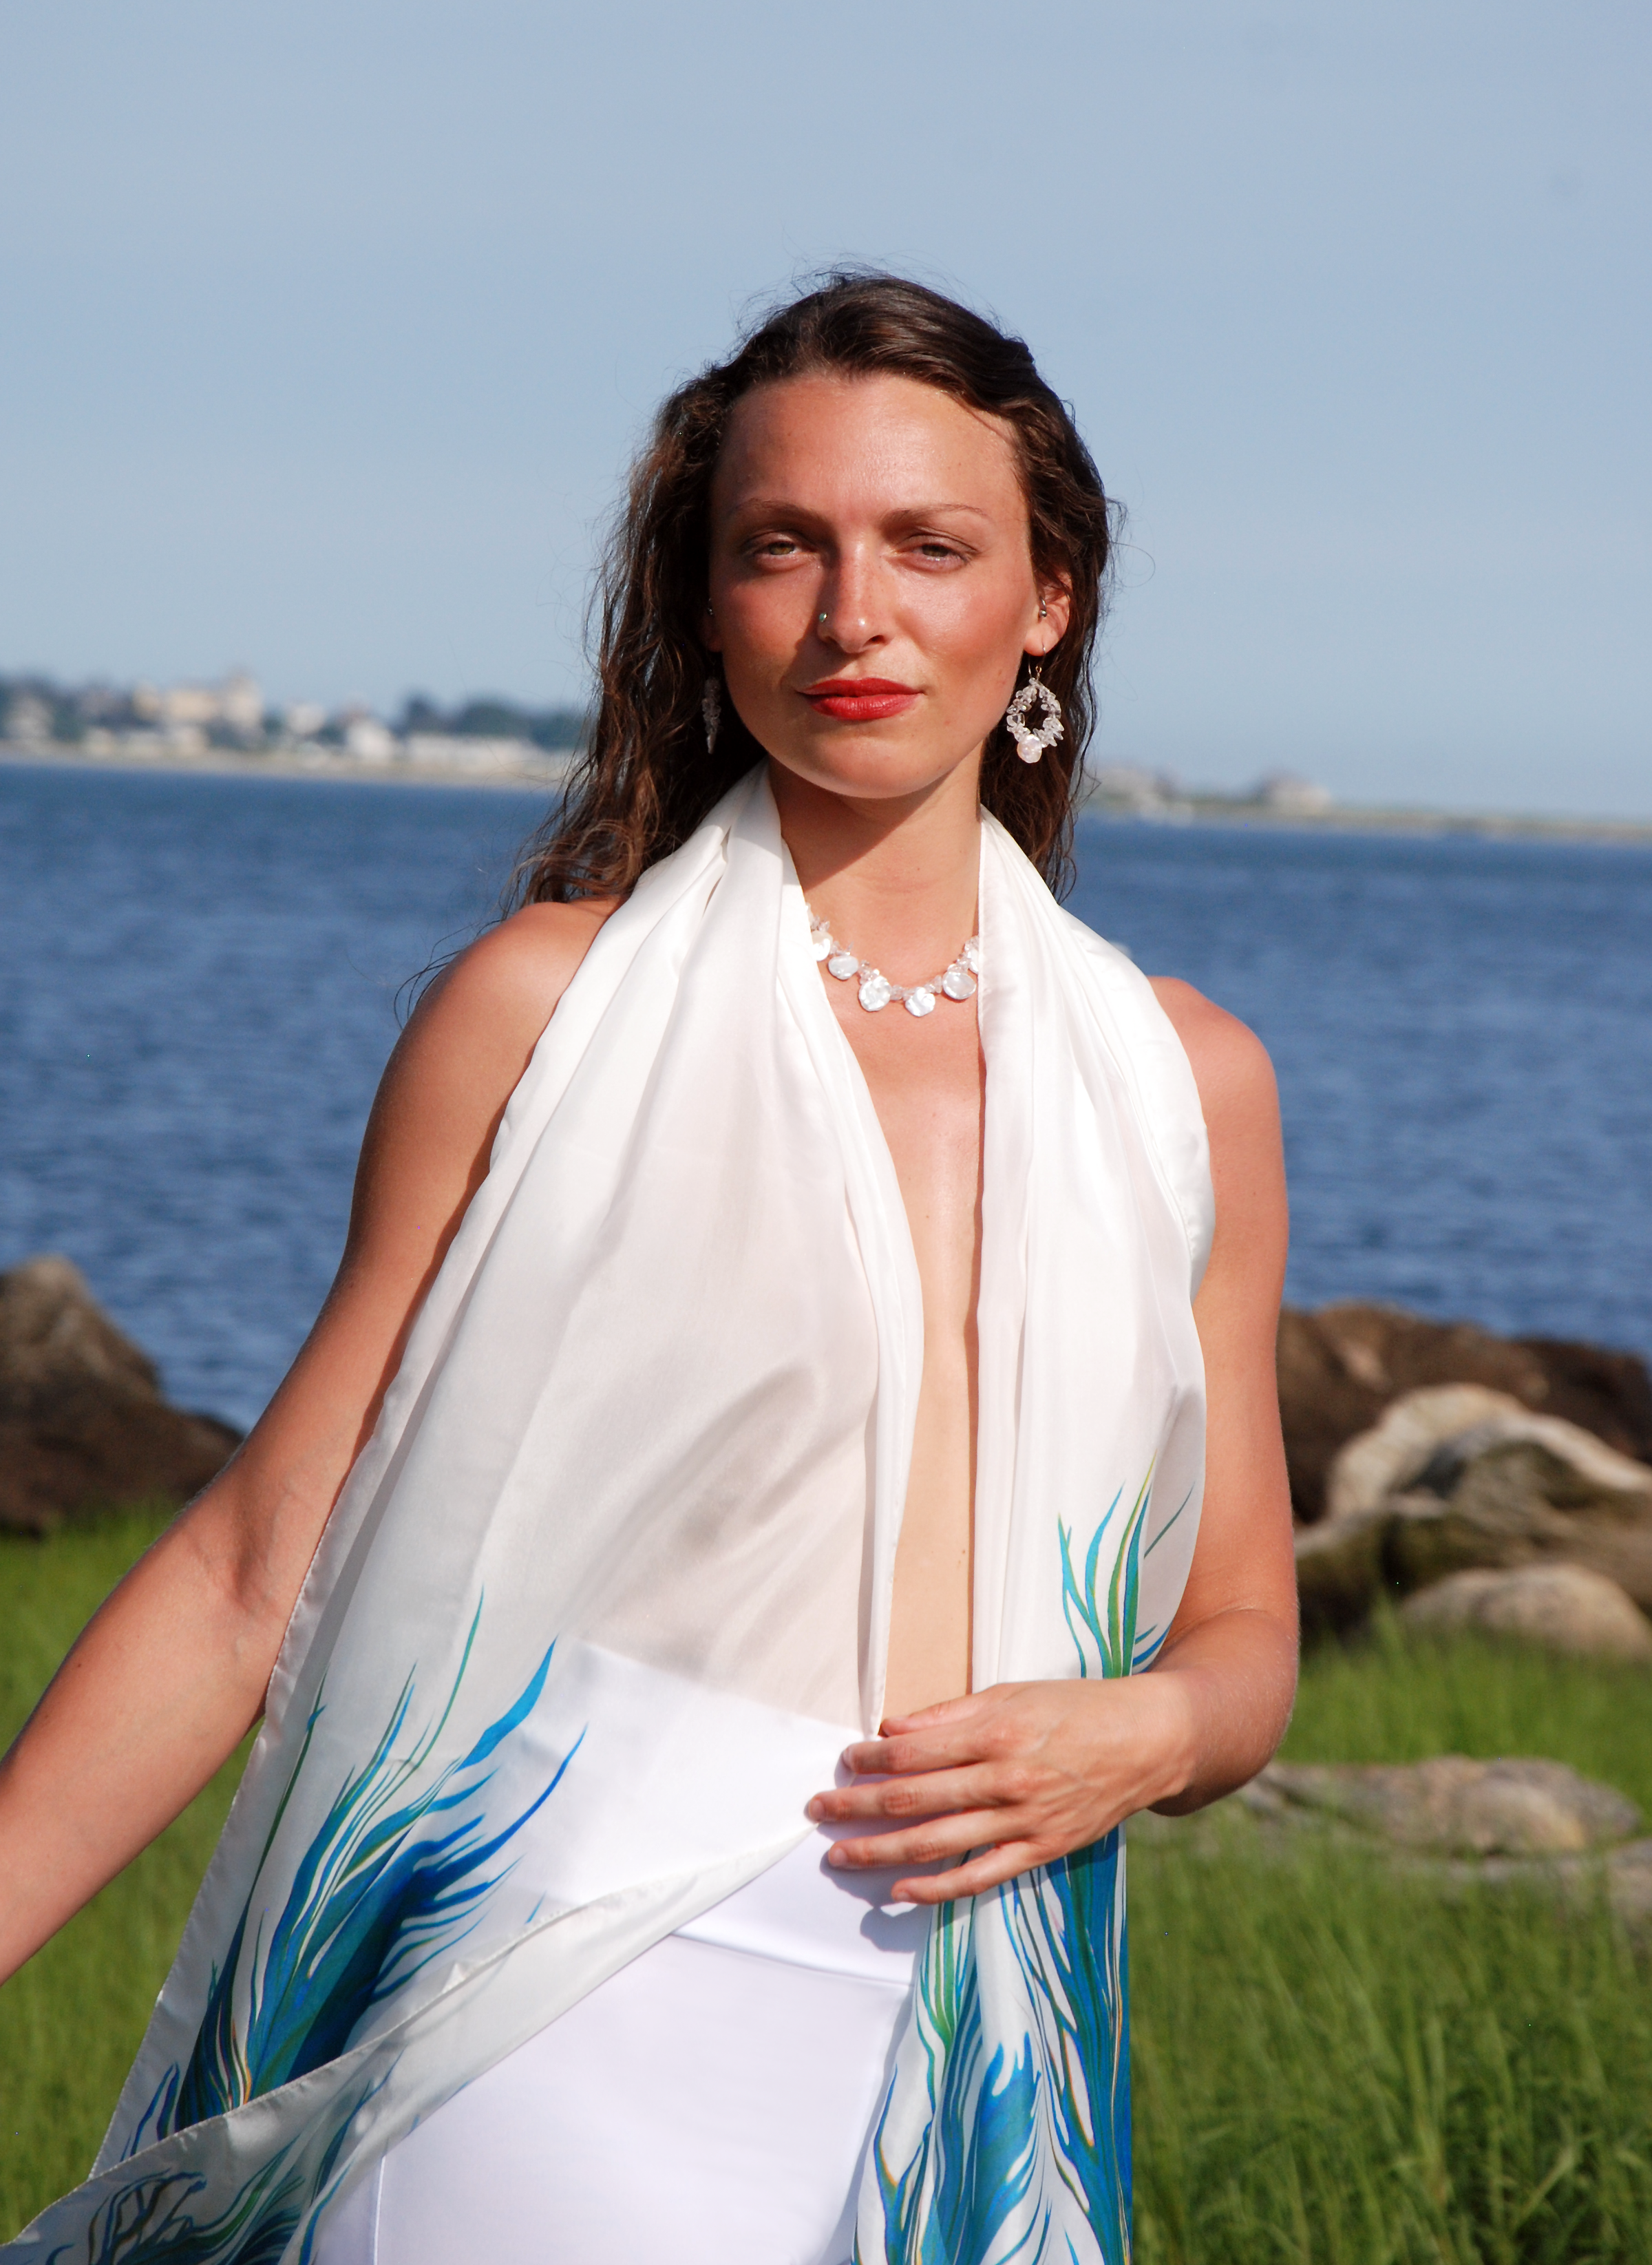 tiwia dive deep emily fishtails scarf and pant 2 gallery shots.png